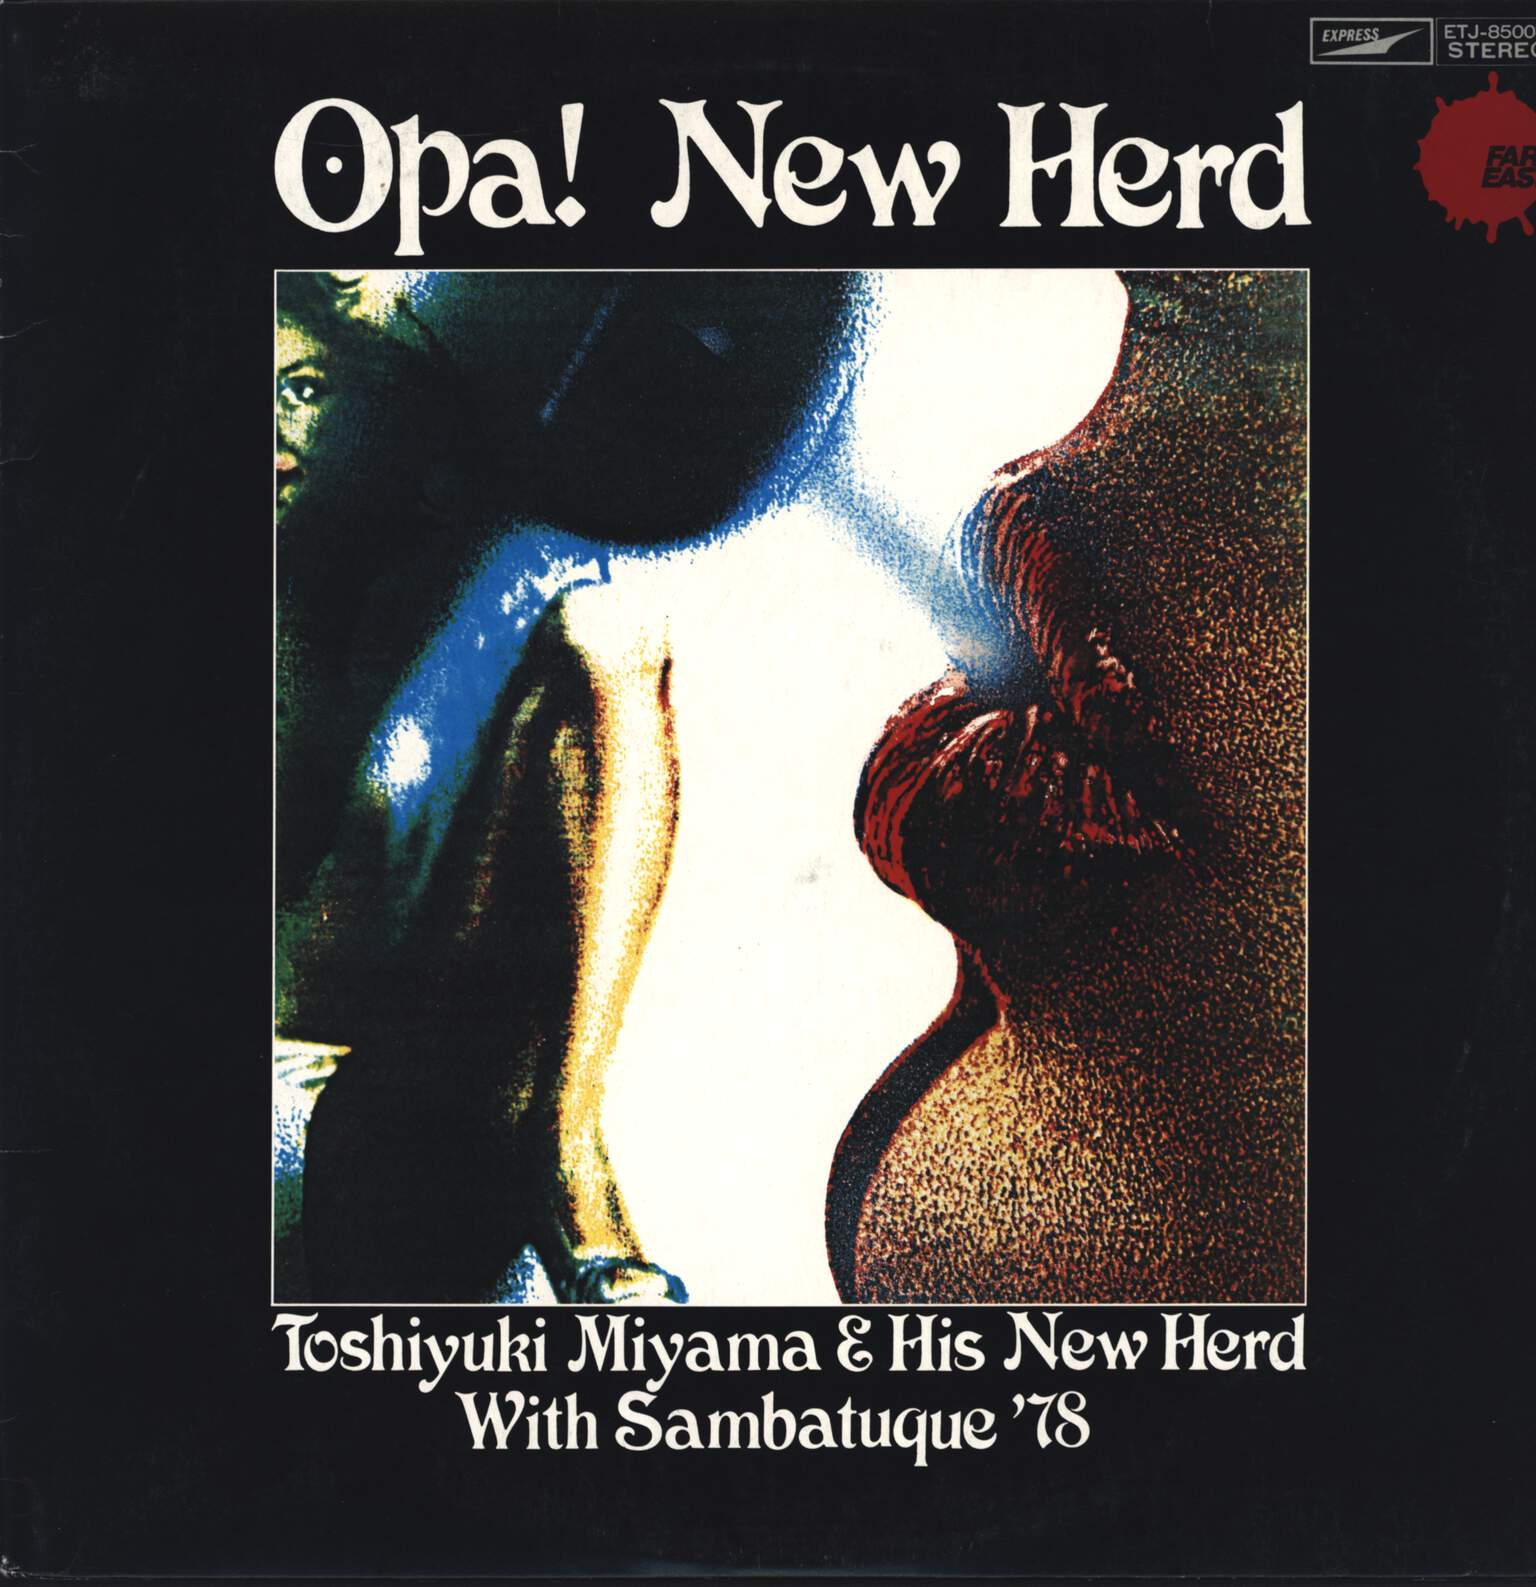 Toshiyuki Miyama & The New Herd: Opa! New Herd, LP (Vinyl)